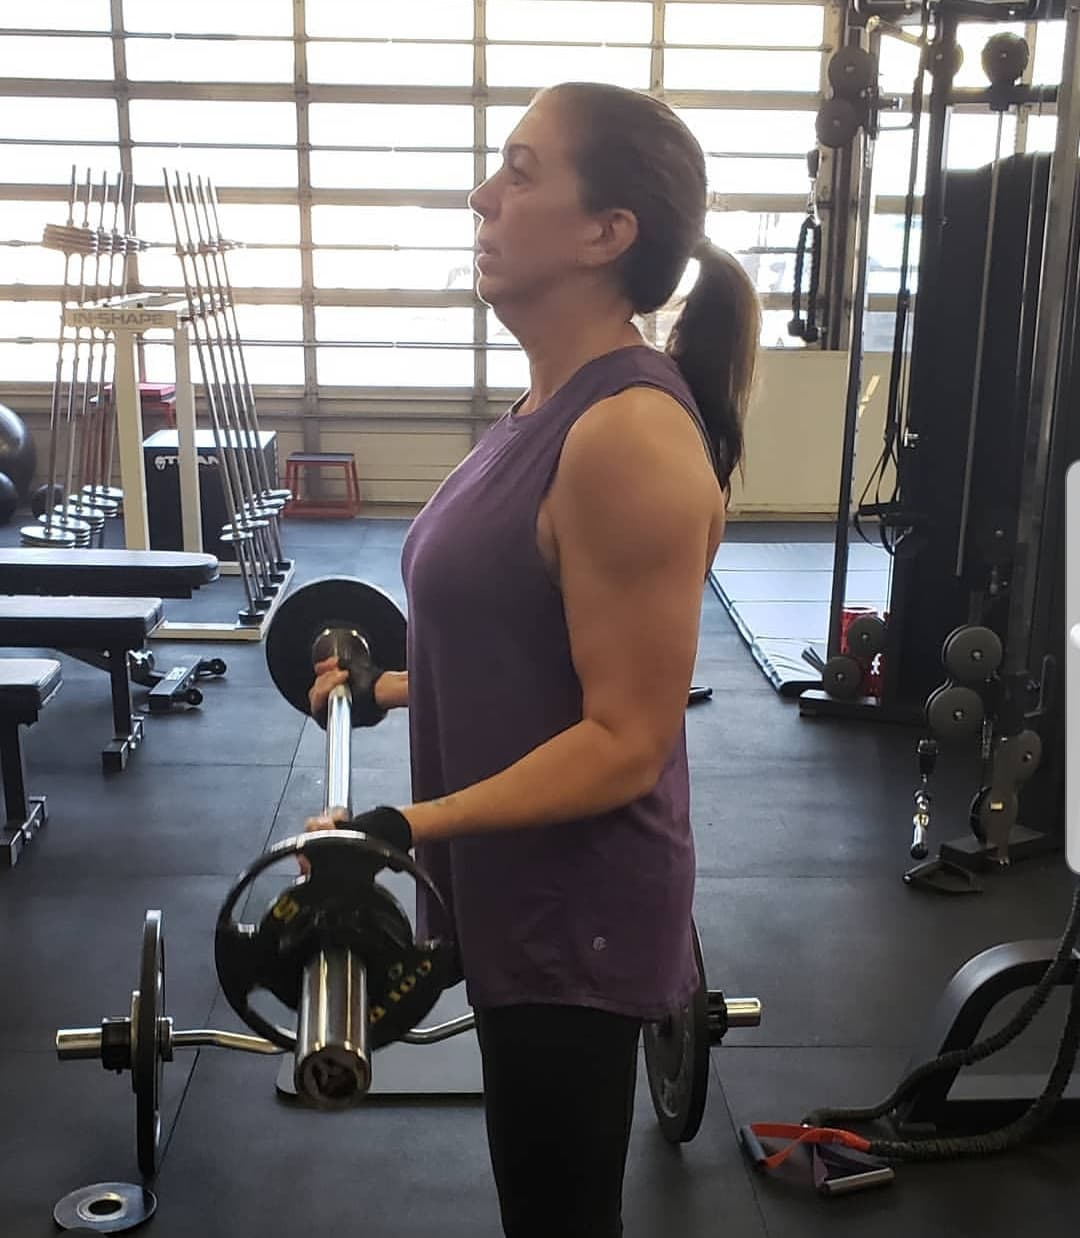 Personal Training - Testimonial Upright curls